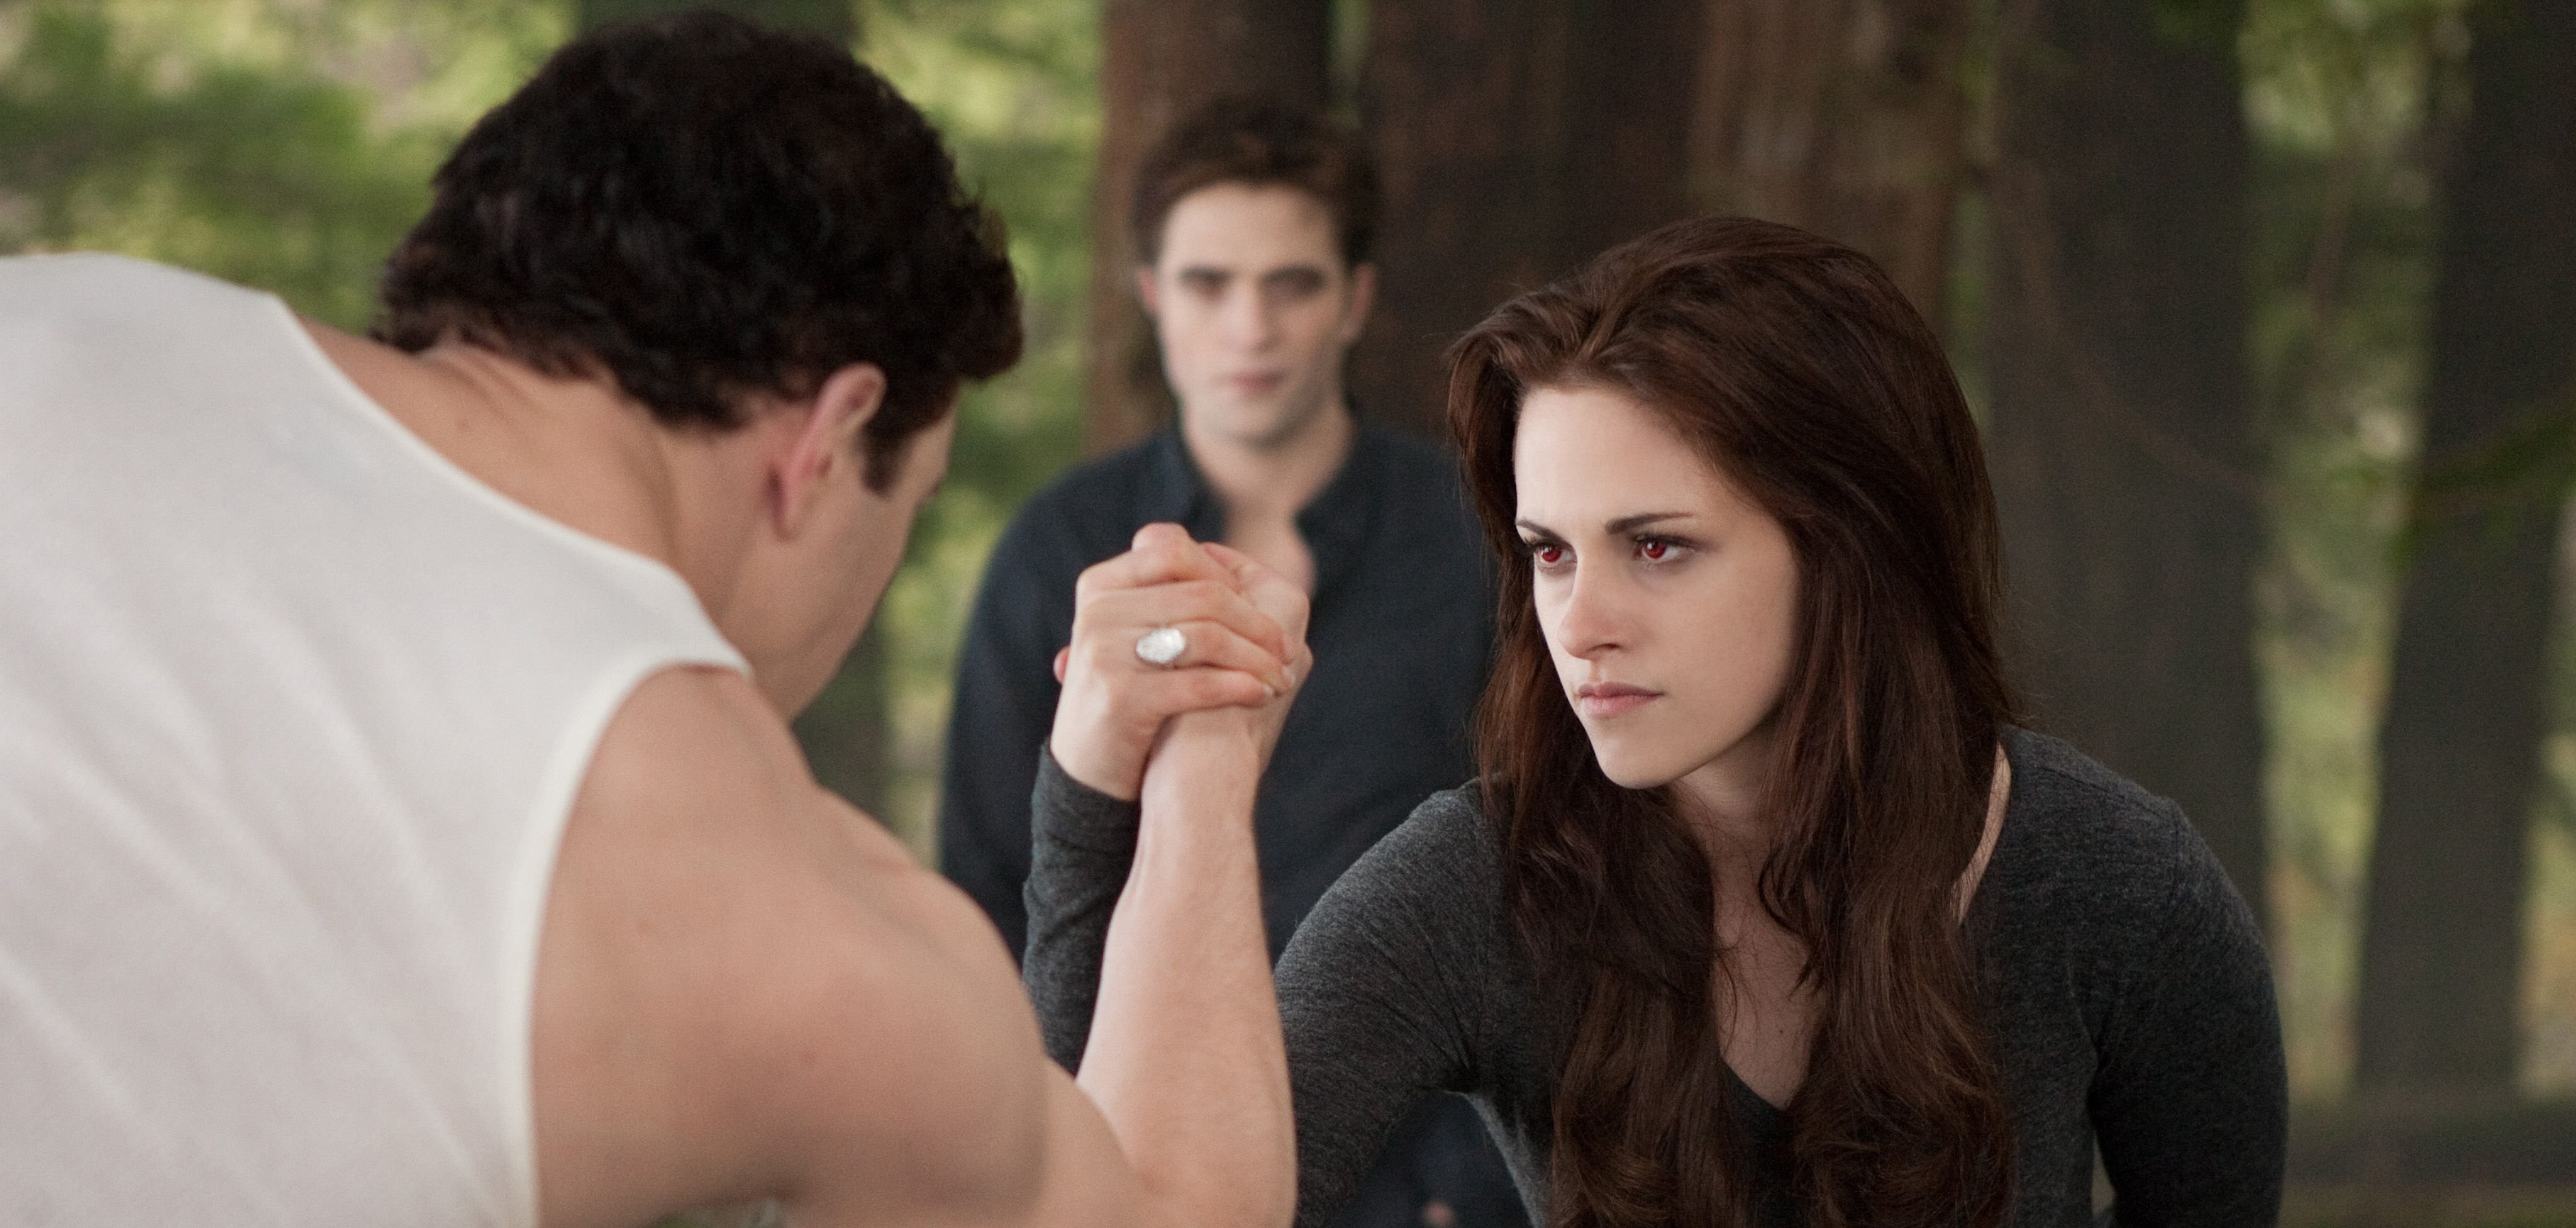 An image from The Twilight Saga: Breaking Dawn - Part 2